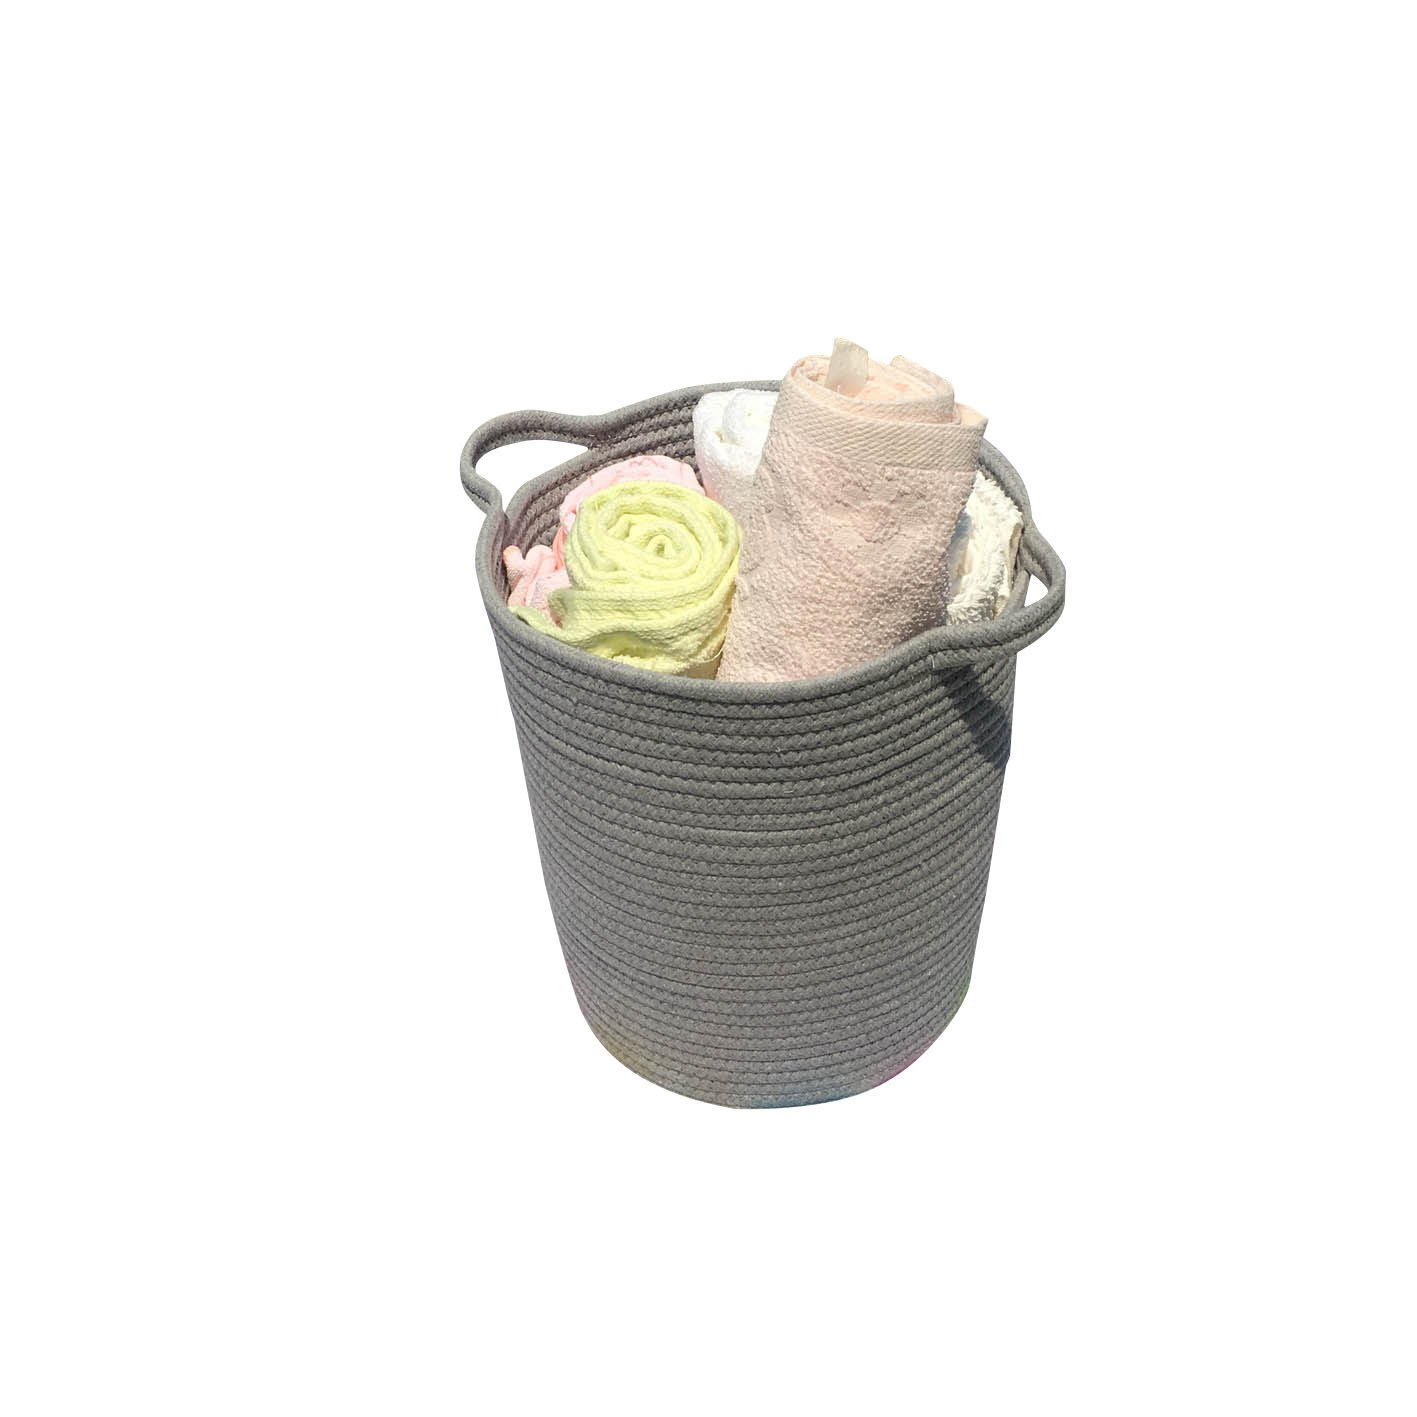 ICEBLUE 1.2''X13.7''X11.8 Cotton Rope Storage Basket with Handles Clothes Hamper Toys Nursery Bins Closet Organization (Grey) The Best Time 34101042